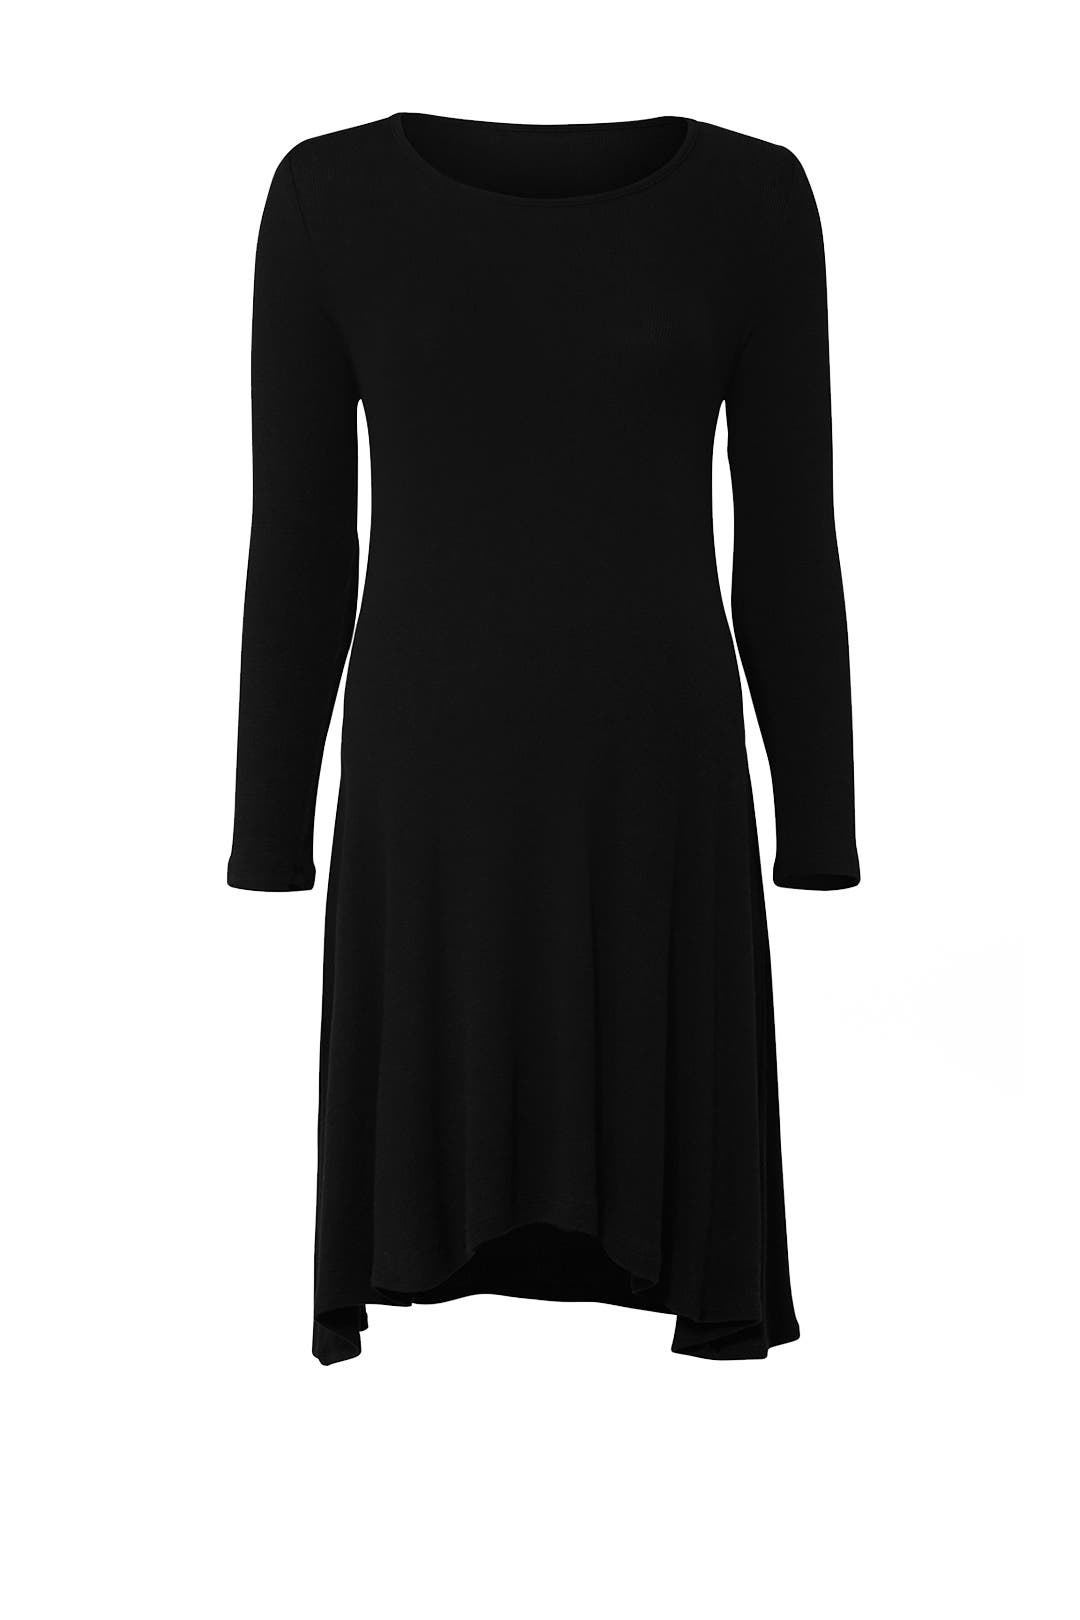 de0a8e6f71a36 Black Trapeze Maternity Dress by Ingrid & Isabel for $30 | Rent the ...